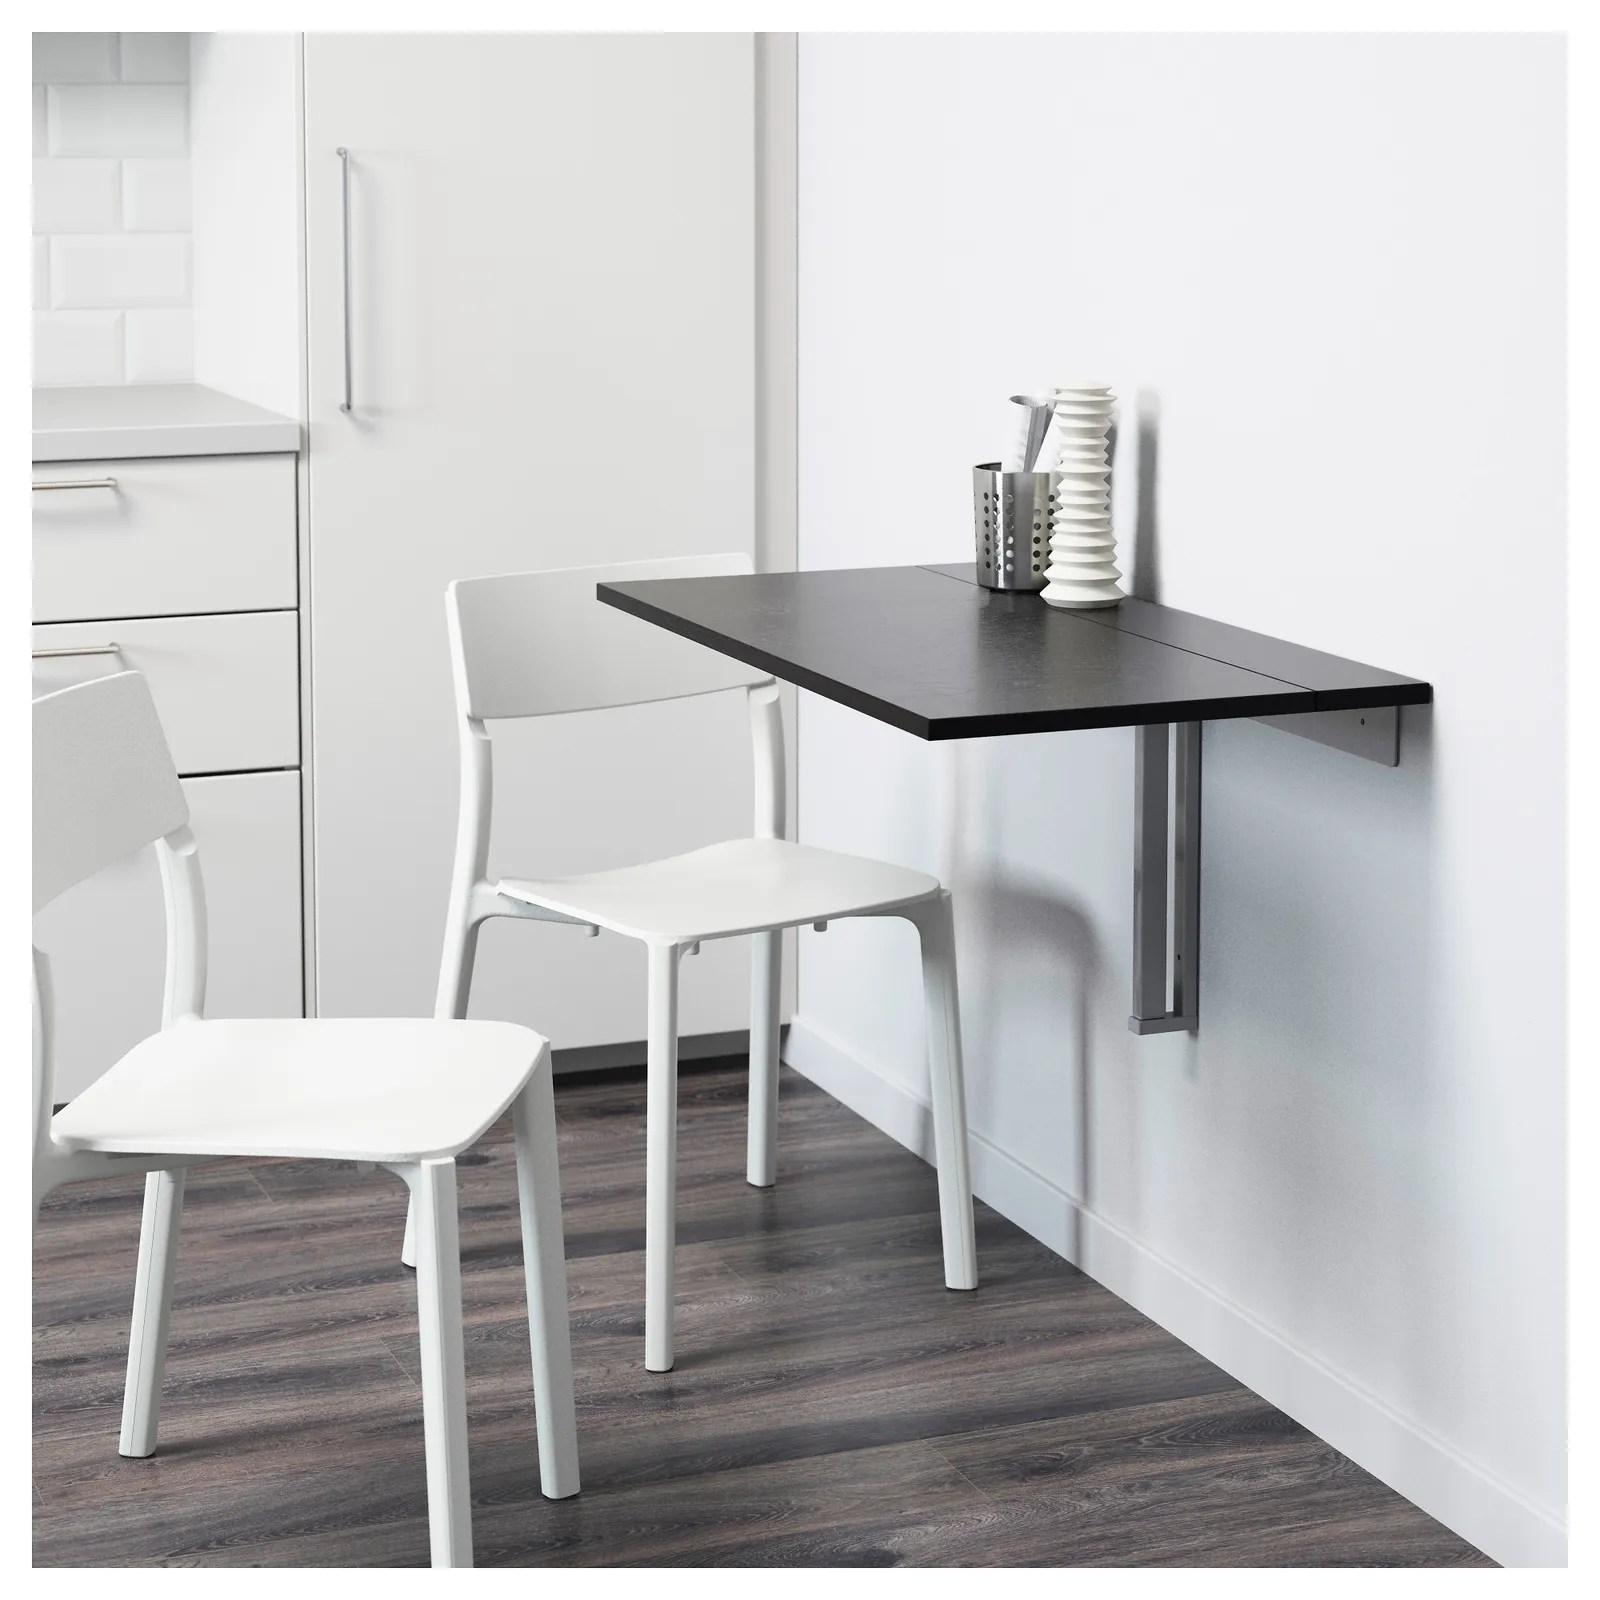 Wall Mounted Desks For Small Spaces Wall Mounted Furniture Is The Secret To Keeping A Small Room